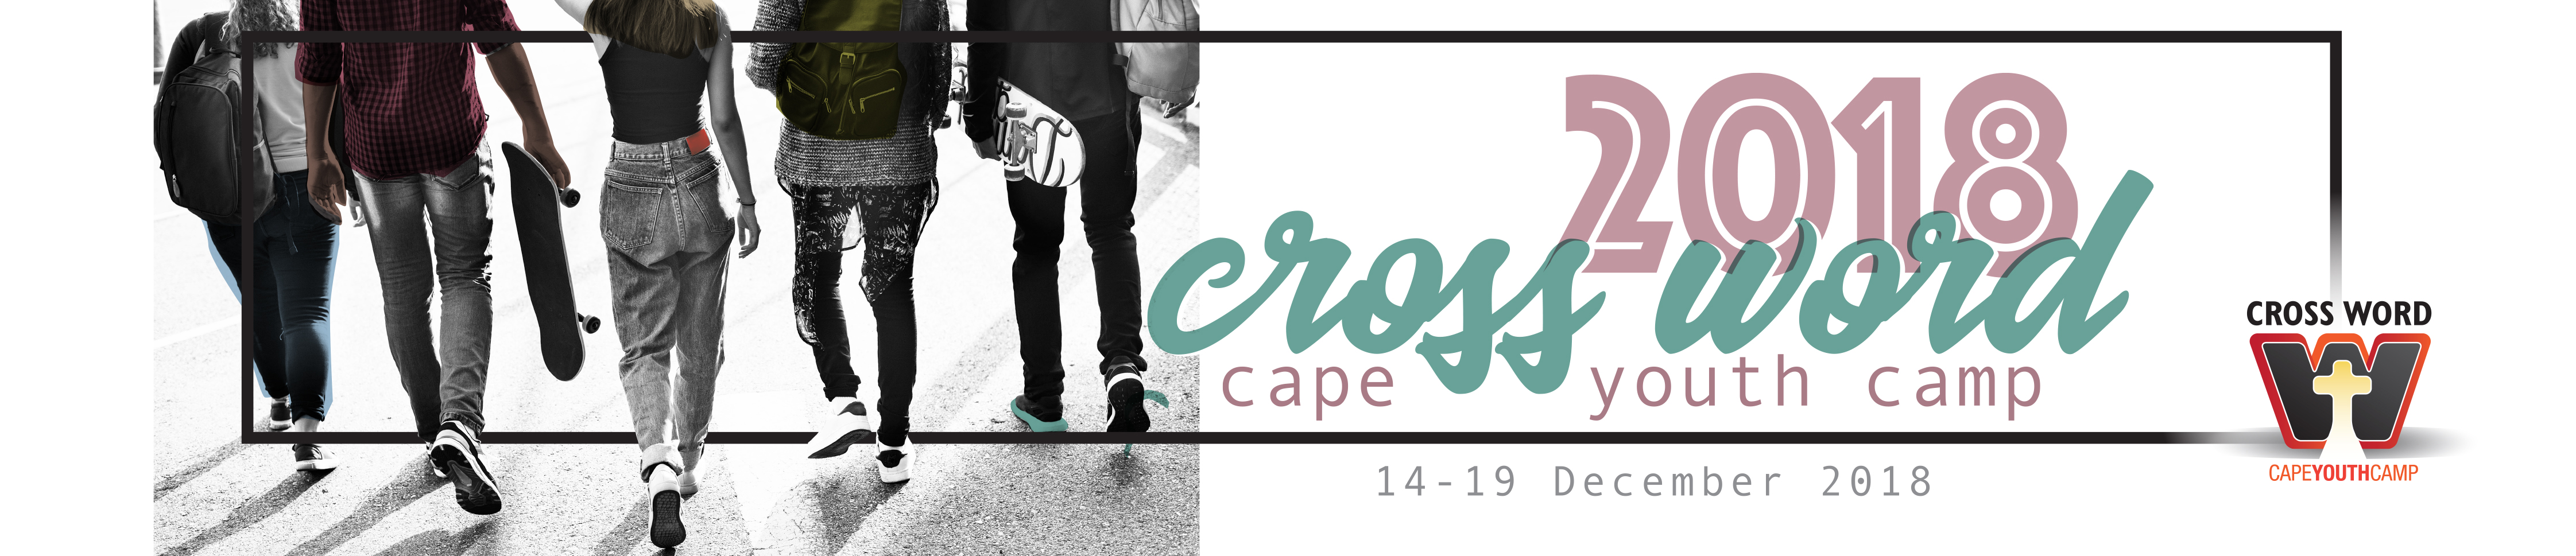 Cross Word Youth Camp Logo